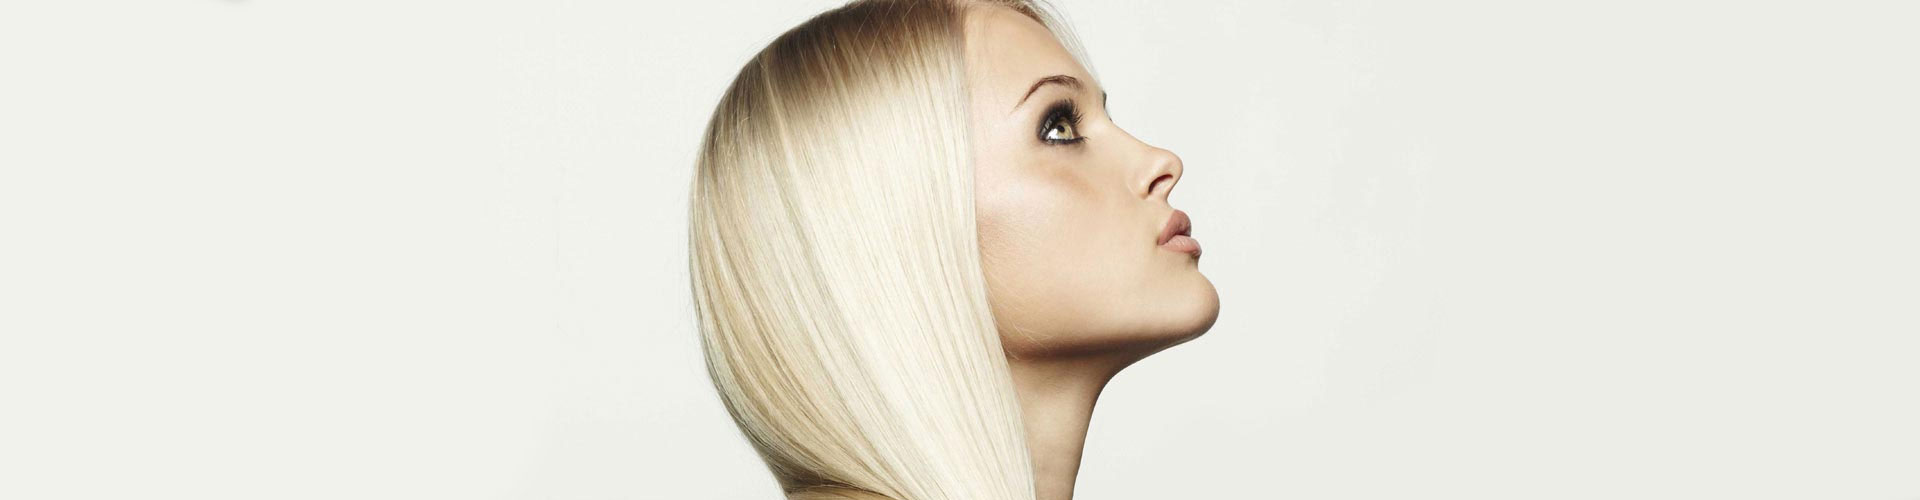 OLAPLEX Hair Treatments at Aurora Hairdressing in Northampton - Protect Your Hair During The Hair Colouring Process